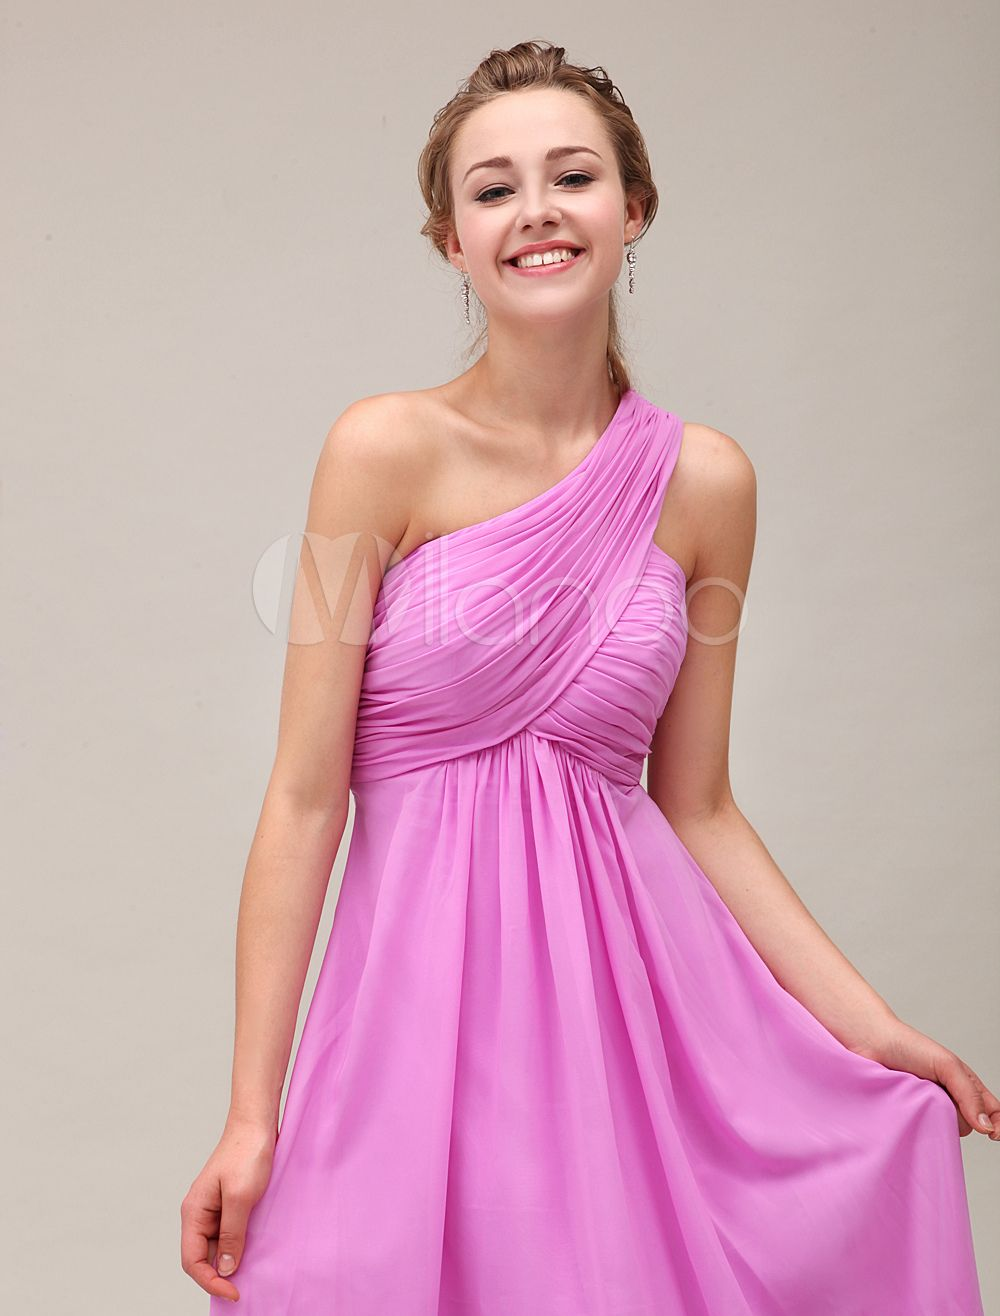 99cde38853d30 Fuchsia Pink Maternity Bridesmaid Dress One Shoulder Pleated Floor Length  Chiffon Wedding Party Dress Milanoo #Bridesmaid, #Dress, #Shoulder